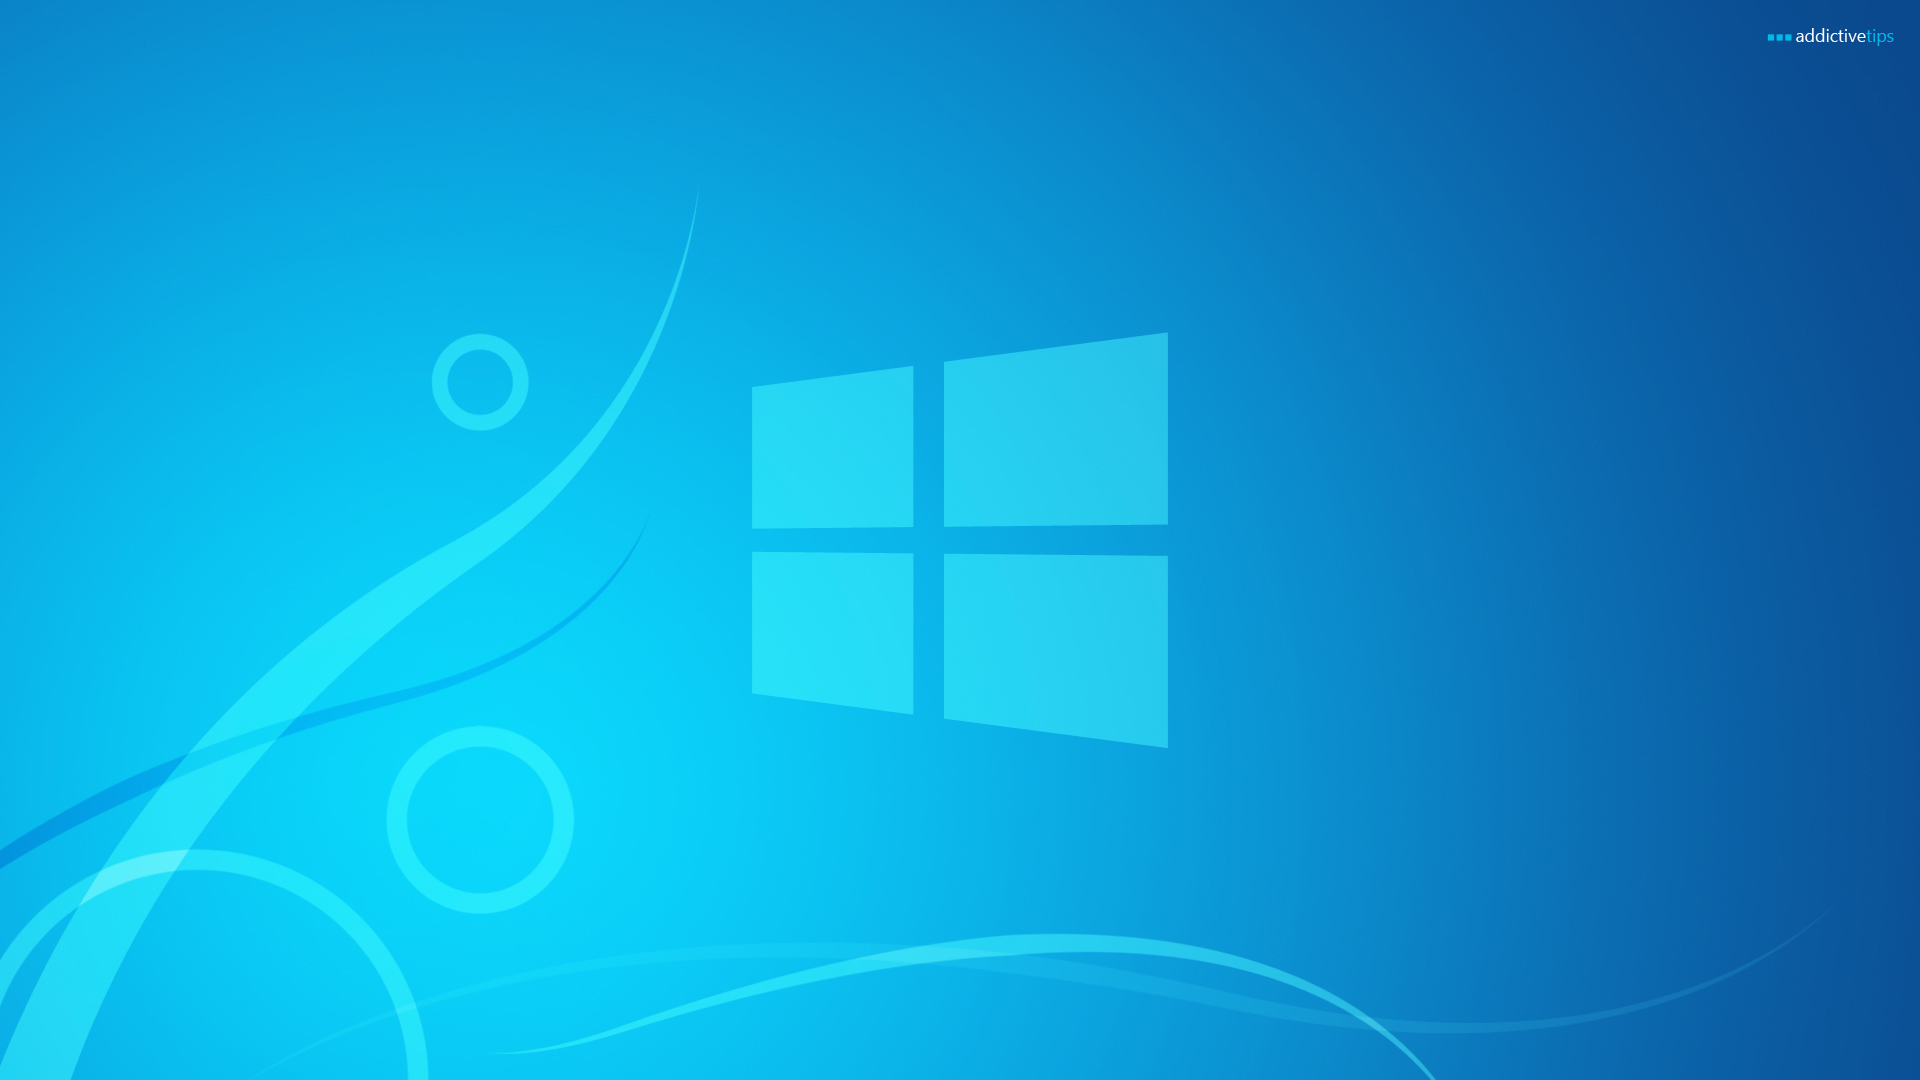 30 awesome wallpapers for windows 8 for 15 window